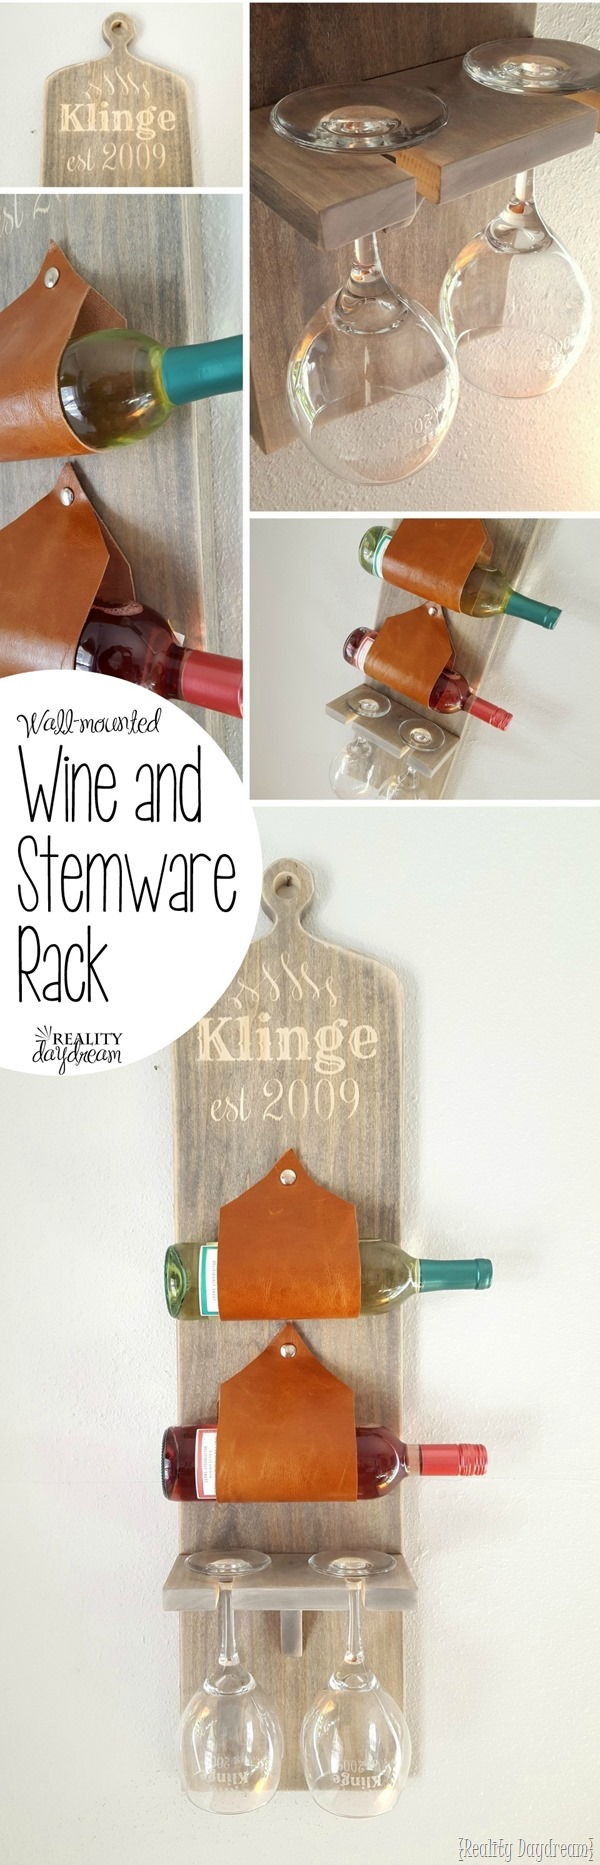 Wall-mounted wine and stemware rack... using leather as the slings! {Reality Daydream}